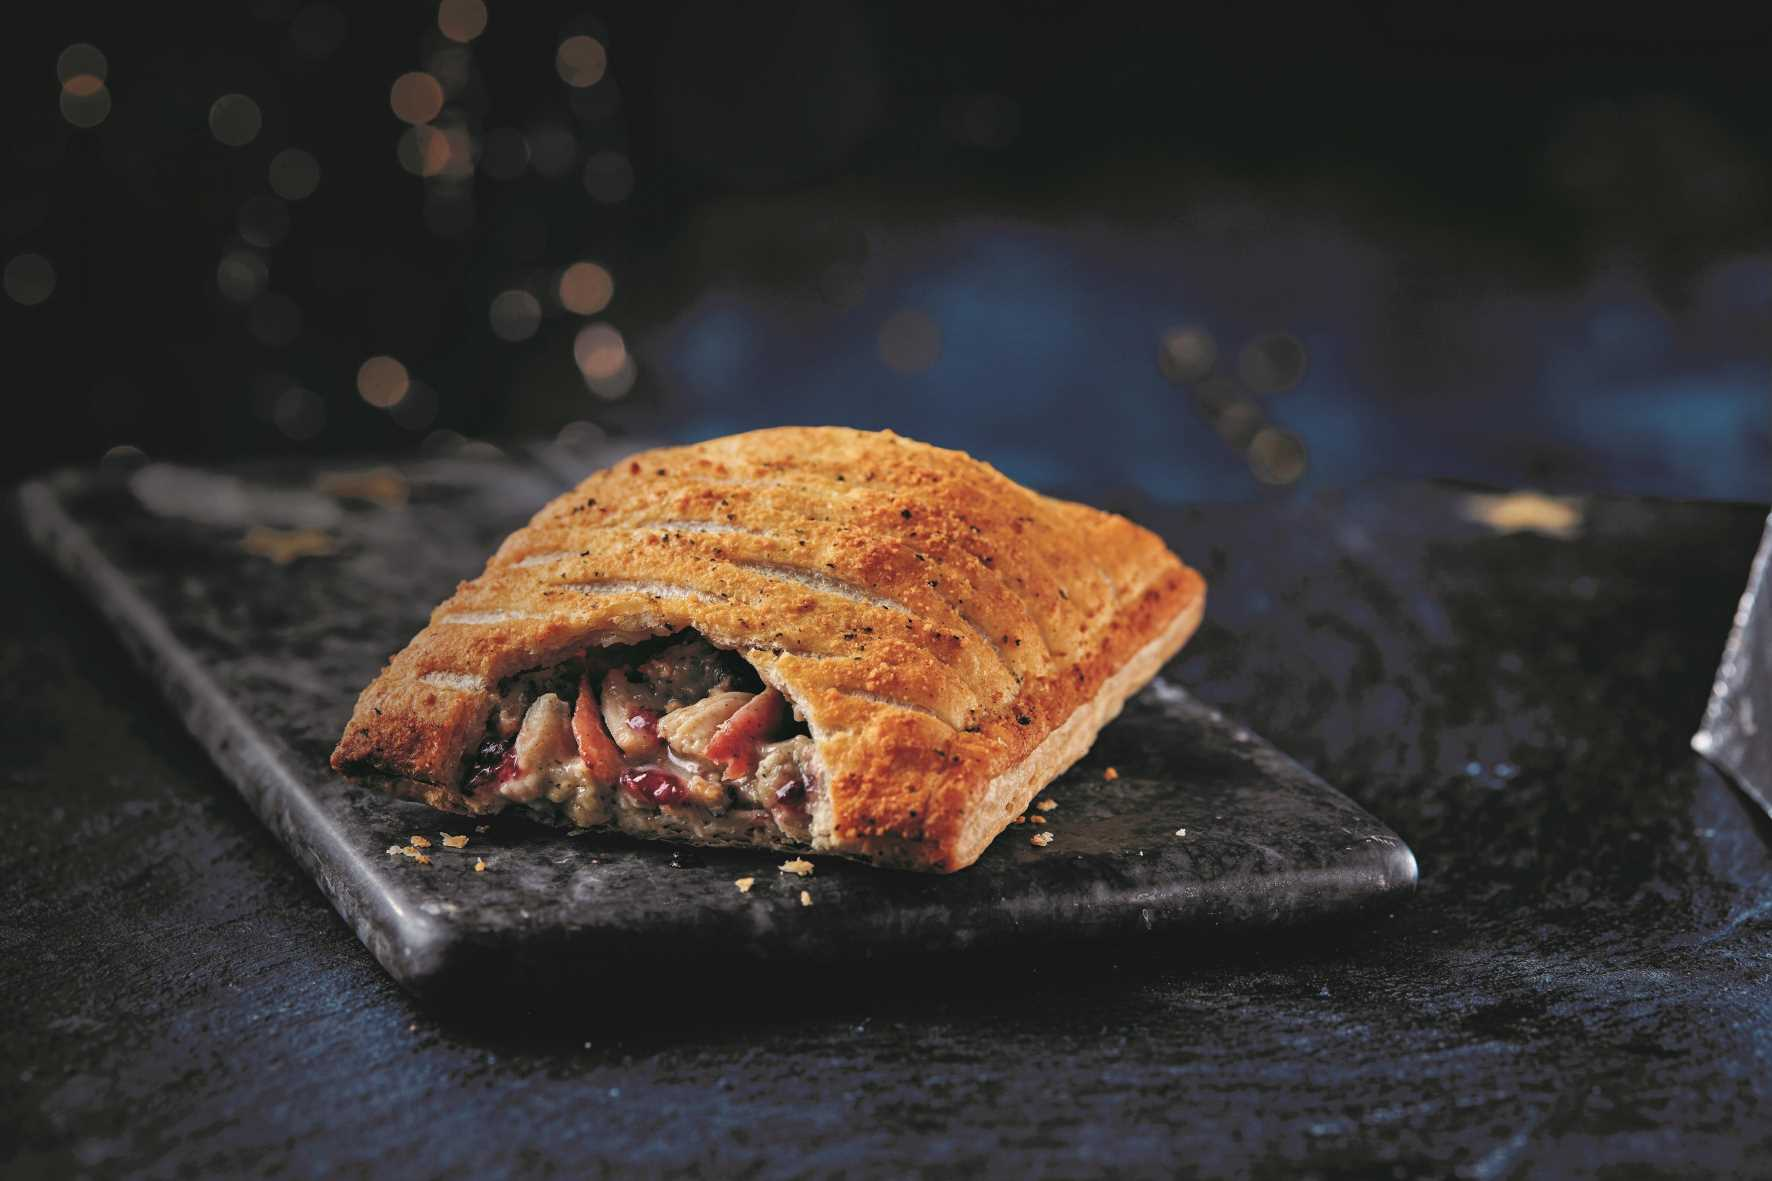 Greggs customers FURIOUS as it temporarily axes menu favourite to sell vegan festive bake